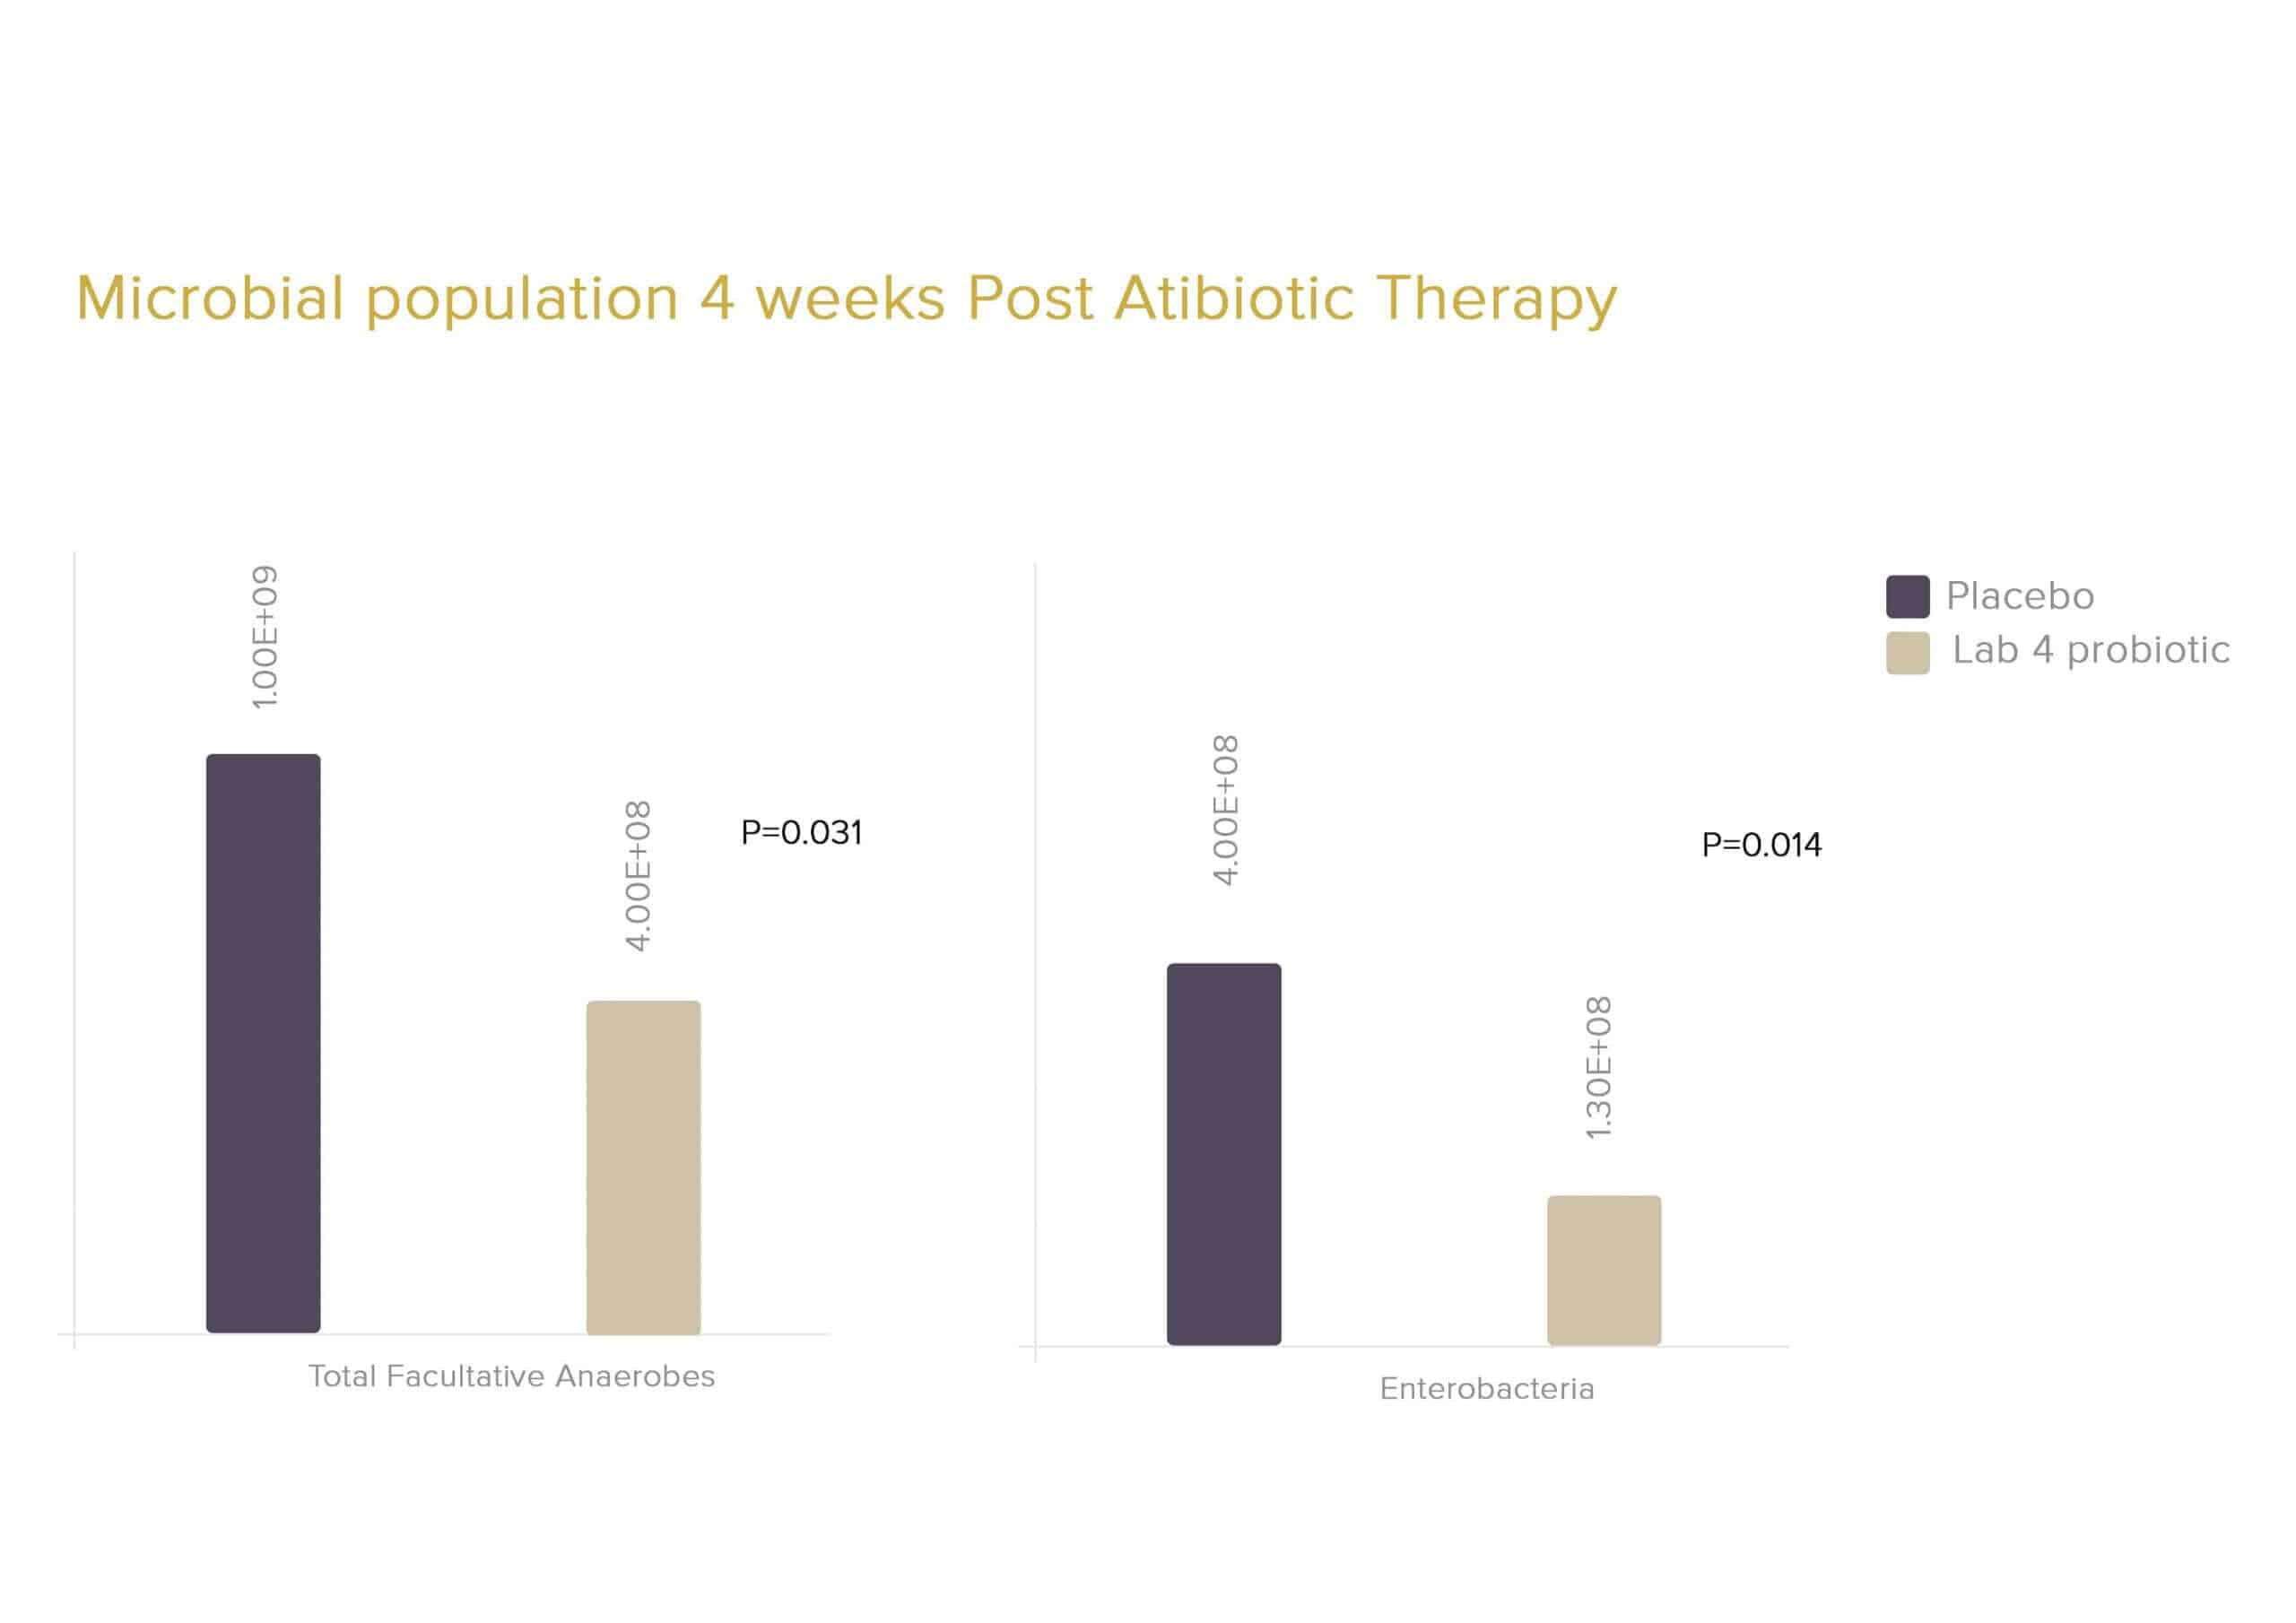 Microbial population 4 weeks post antibiotic therapy